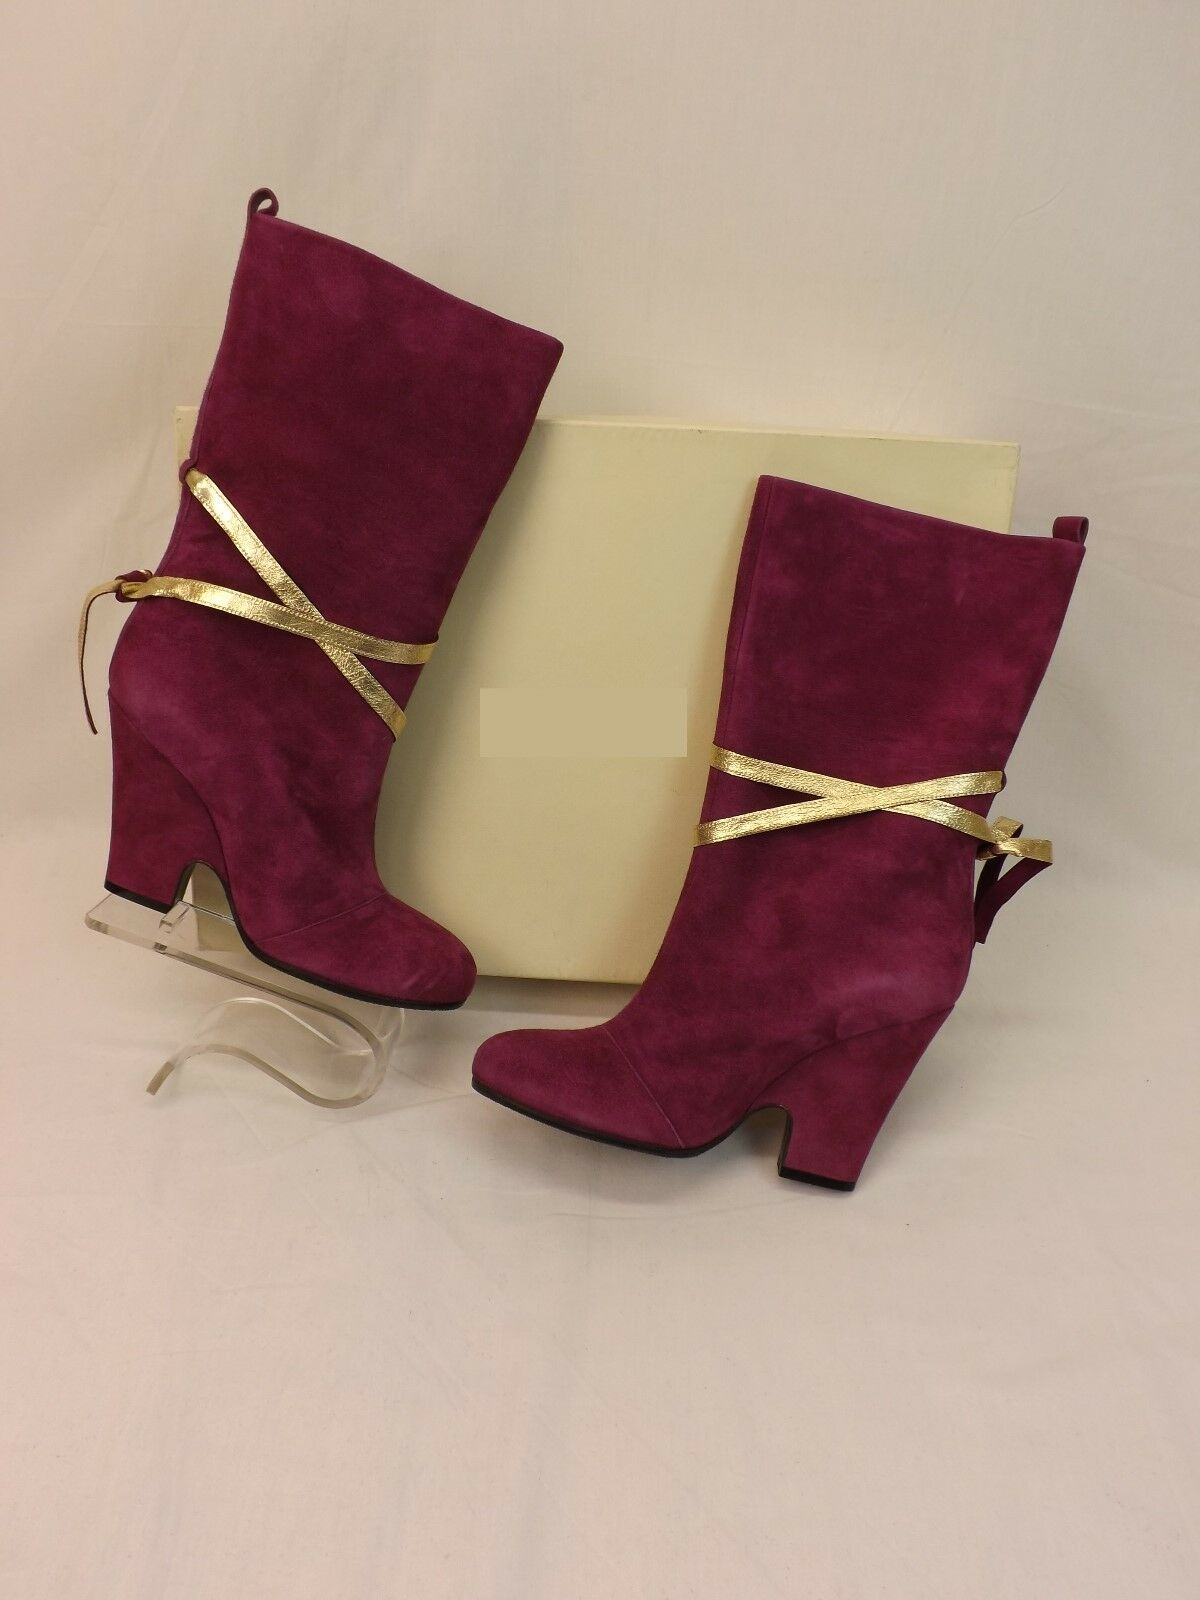 NEW MARC JACOBS PURPLE WEDGE SUEDE GOLD LACE WEDGE PURPLE HEEL SHORT BOOTS 37 ITALY 475665